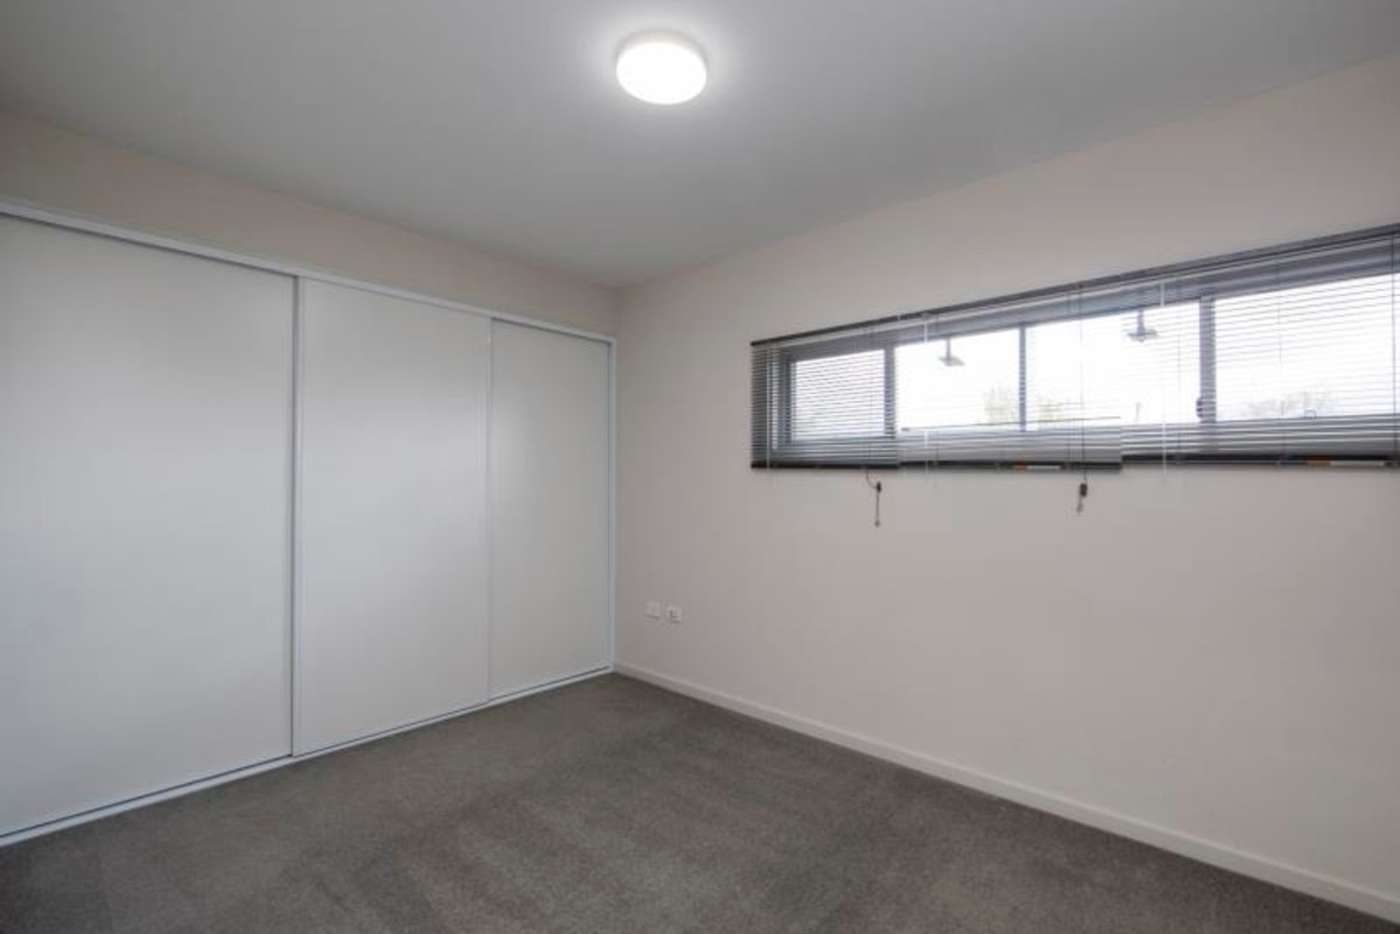 Sixth view of Homely apartment listing, 1/26 Little Walcott Street, North Perth WA 6006